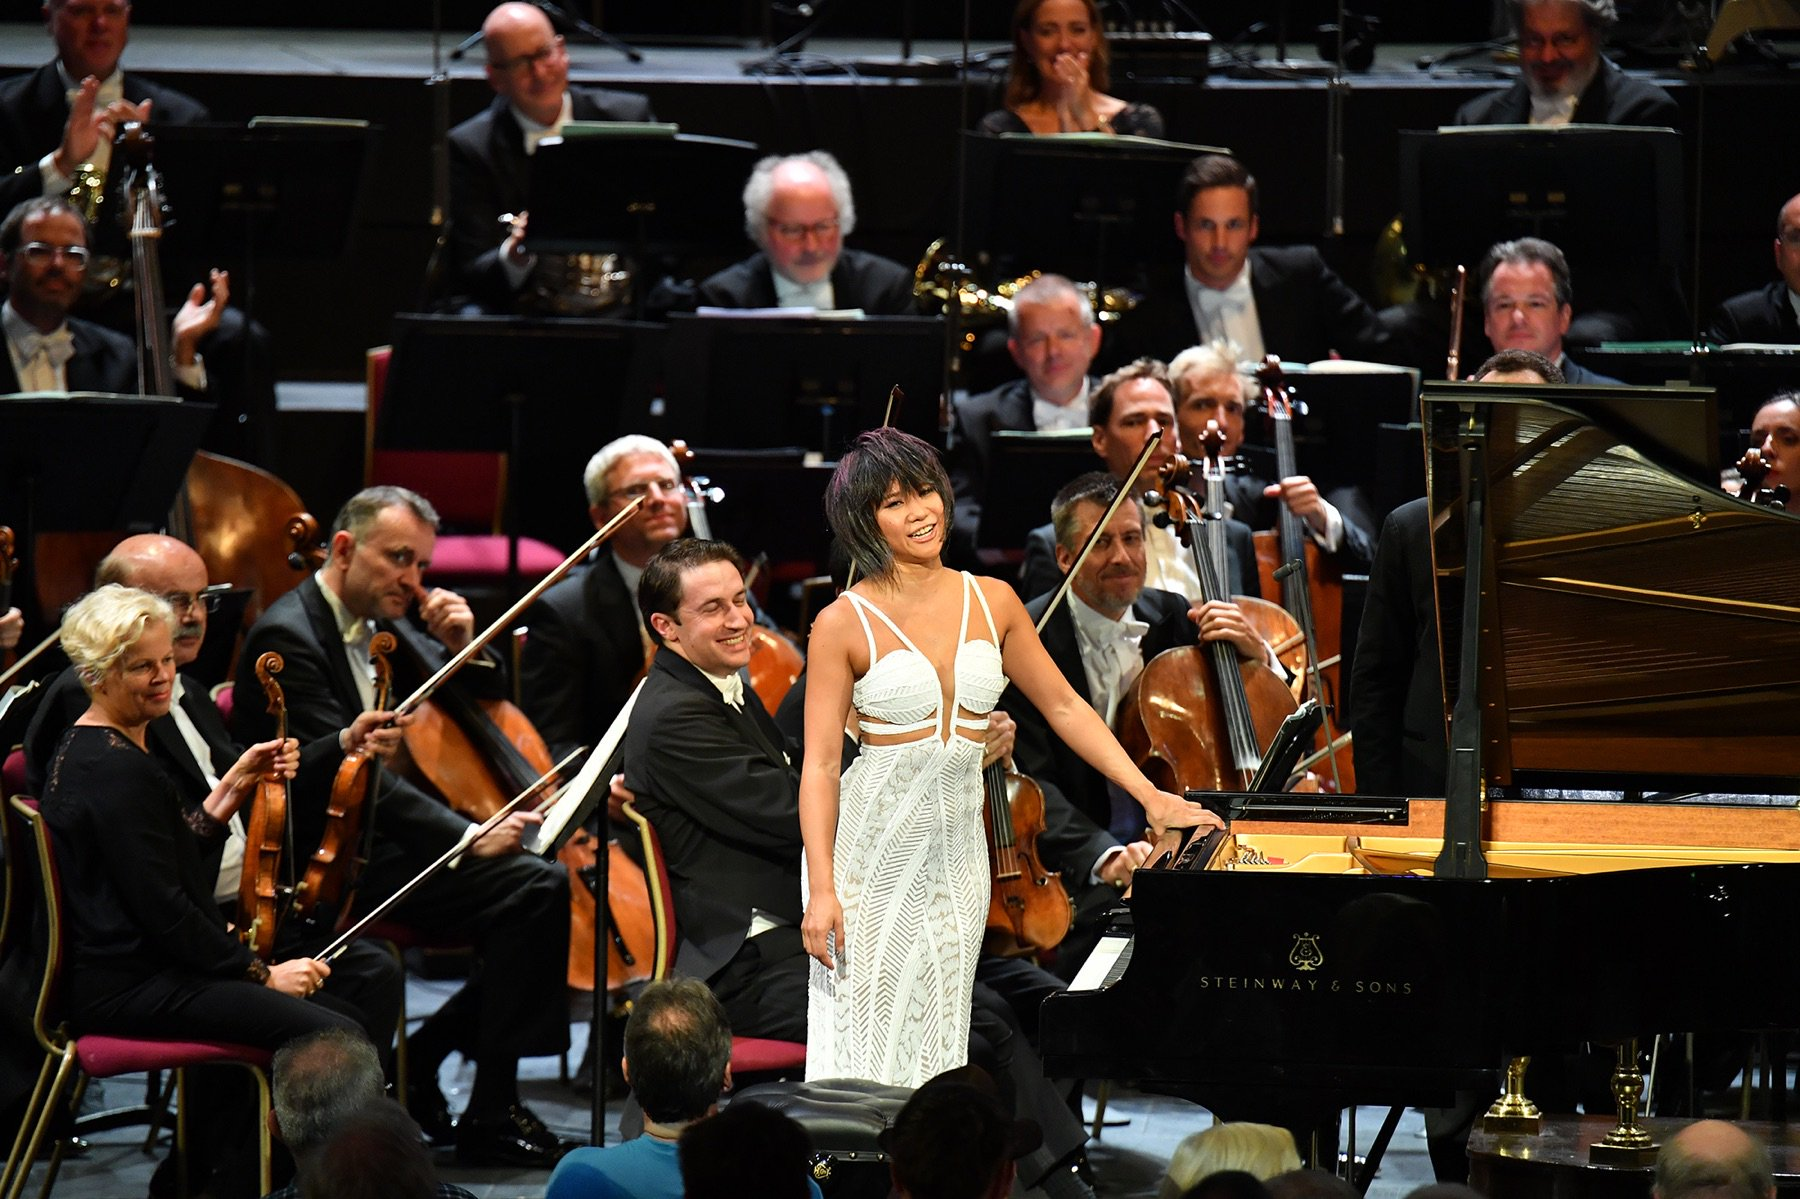 Reloaded twaddle – RT @YujaWang: Can't imagine a better way to start my season than with @BerlinPhi...